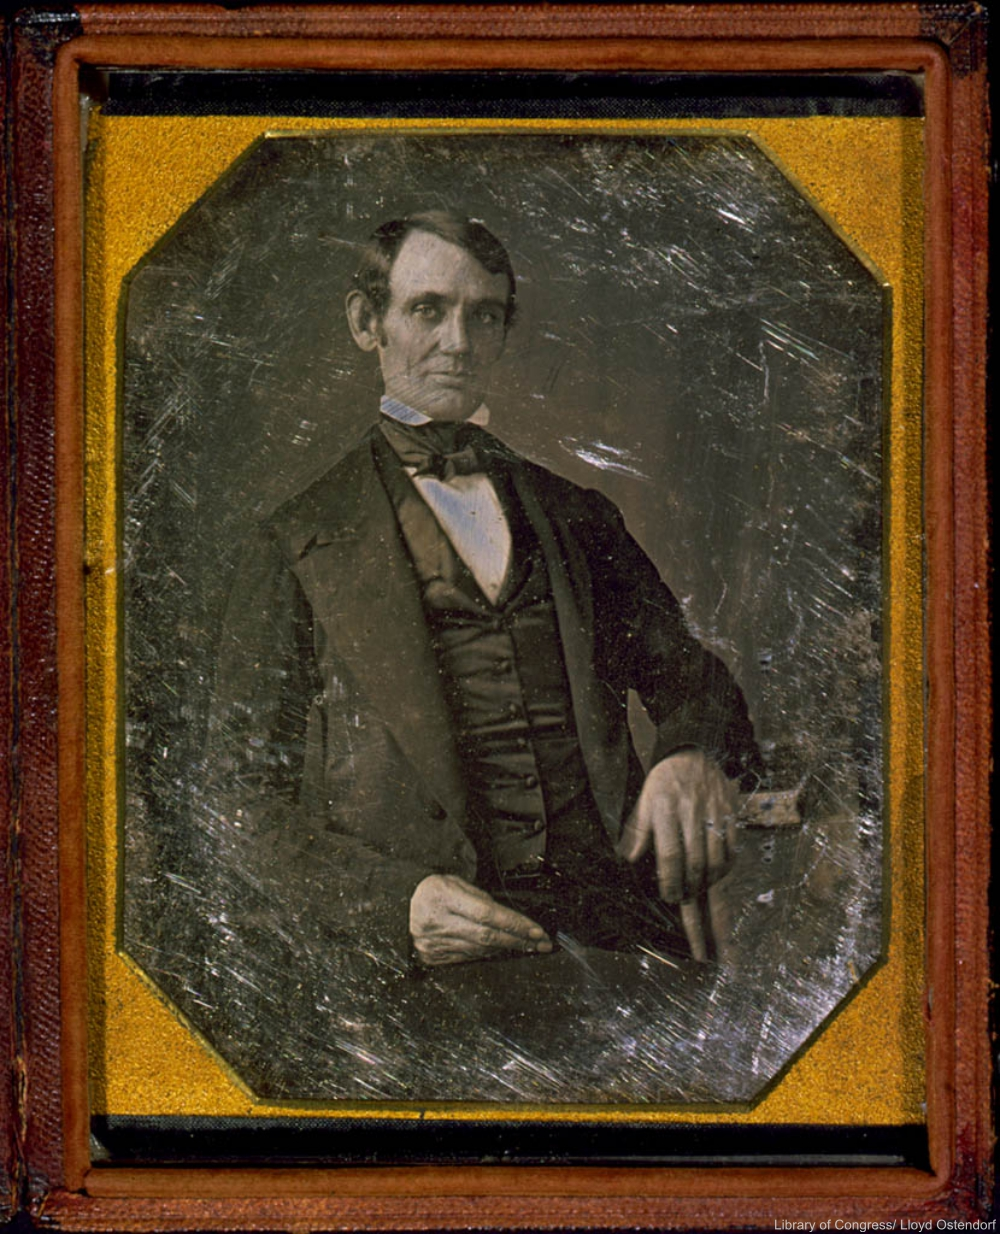 1840s Photograph of Abraham Lincoln.